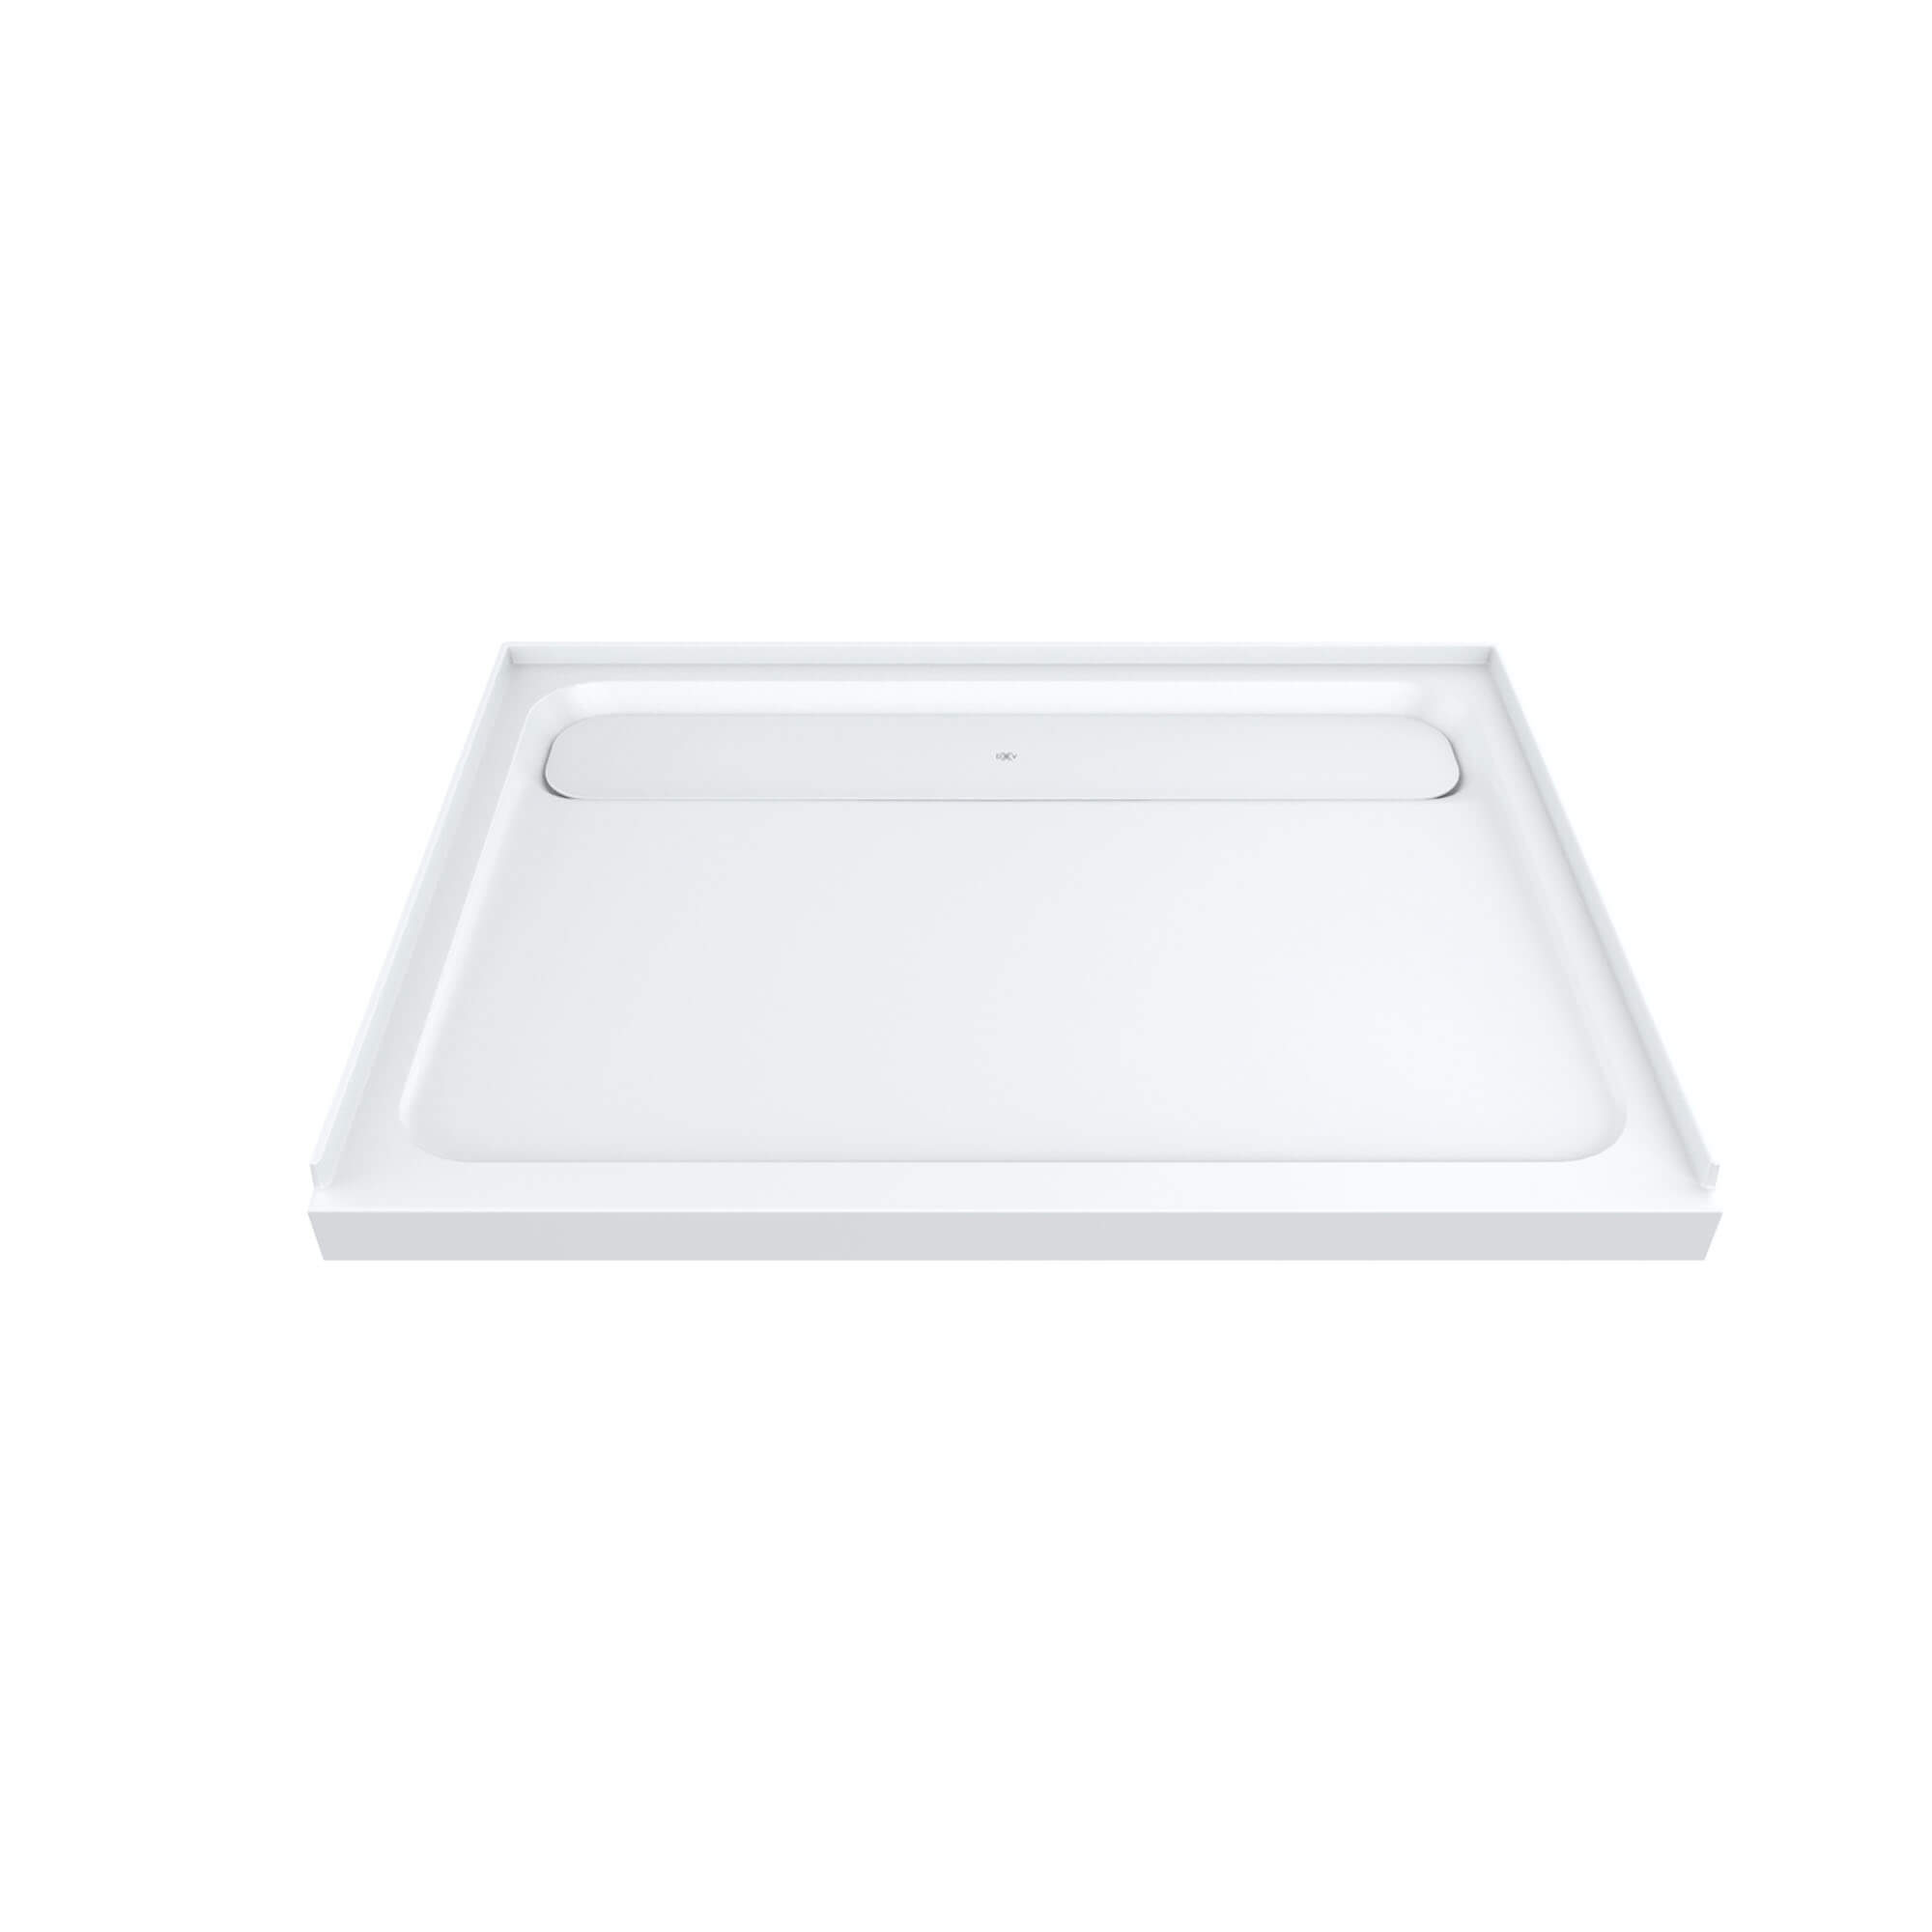 "DXV Modulus 48"" x 36"" Solid Surface Shower Base"